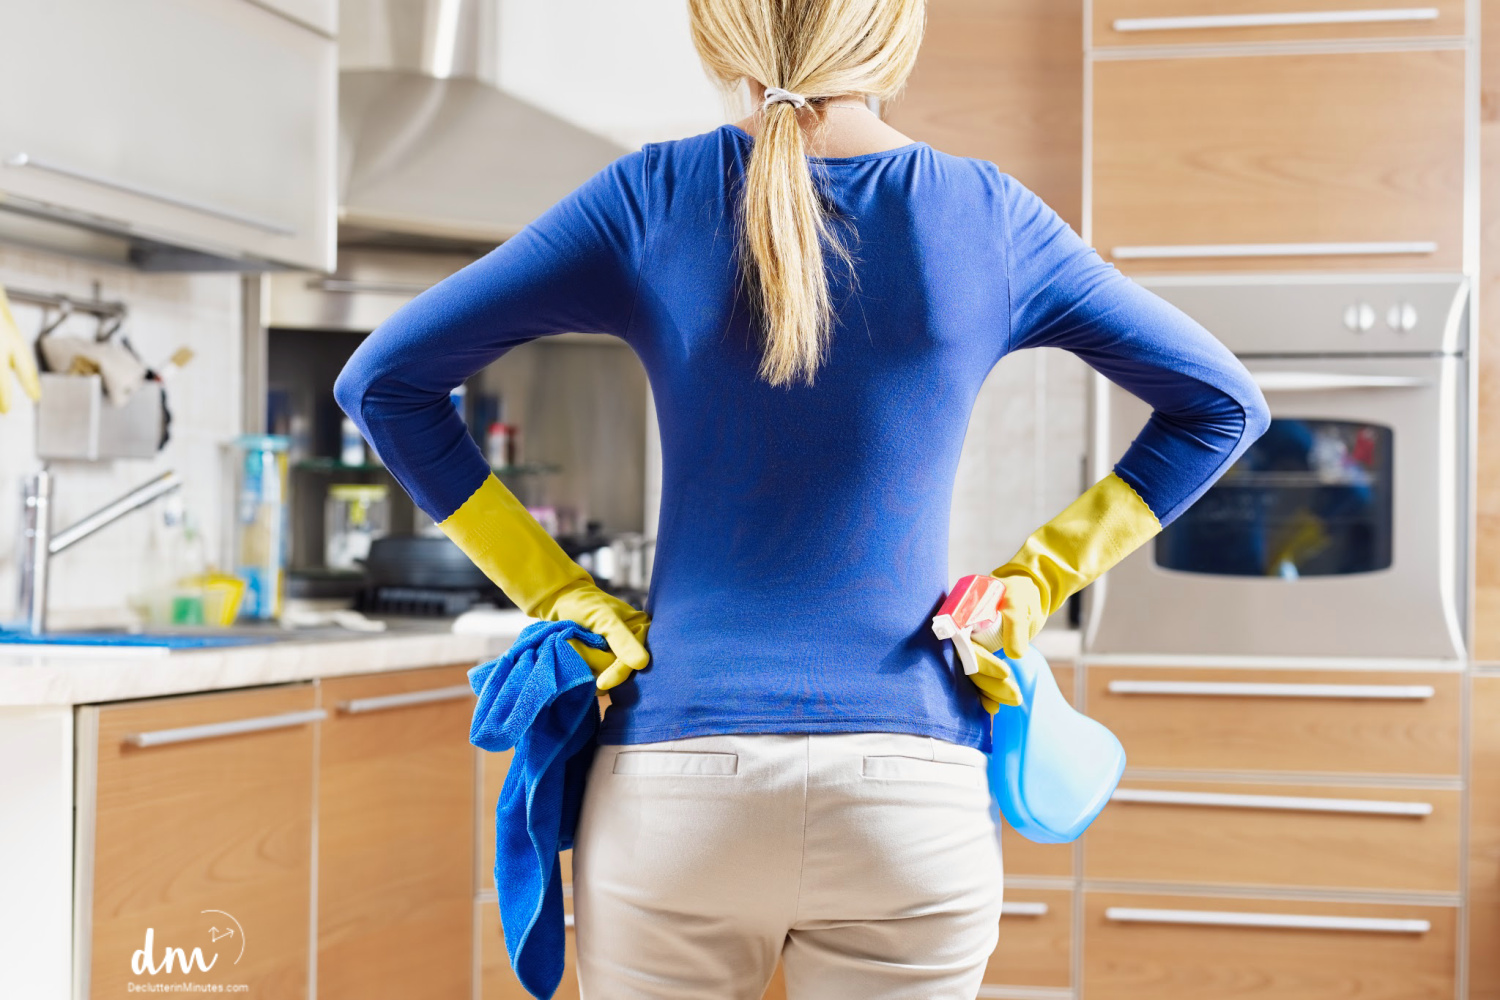 women getting ready to clean with her new decluttering plan